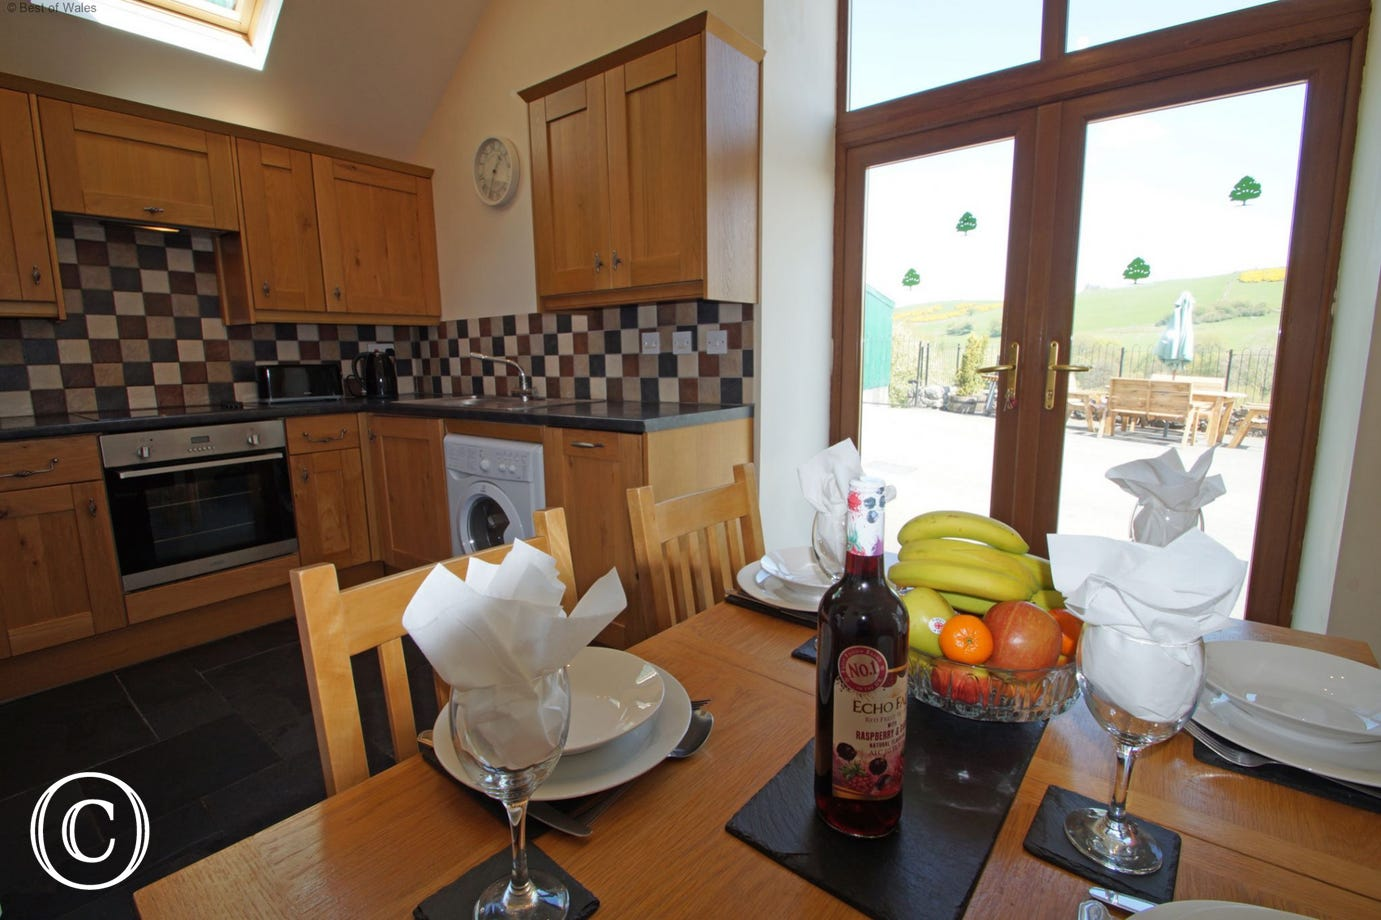 Cottage to rent in Wales - dining area with countryside views